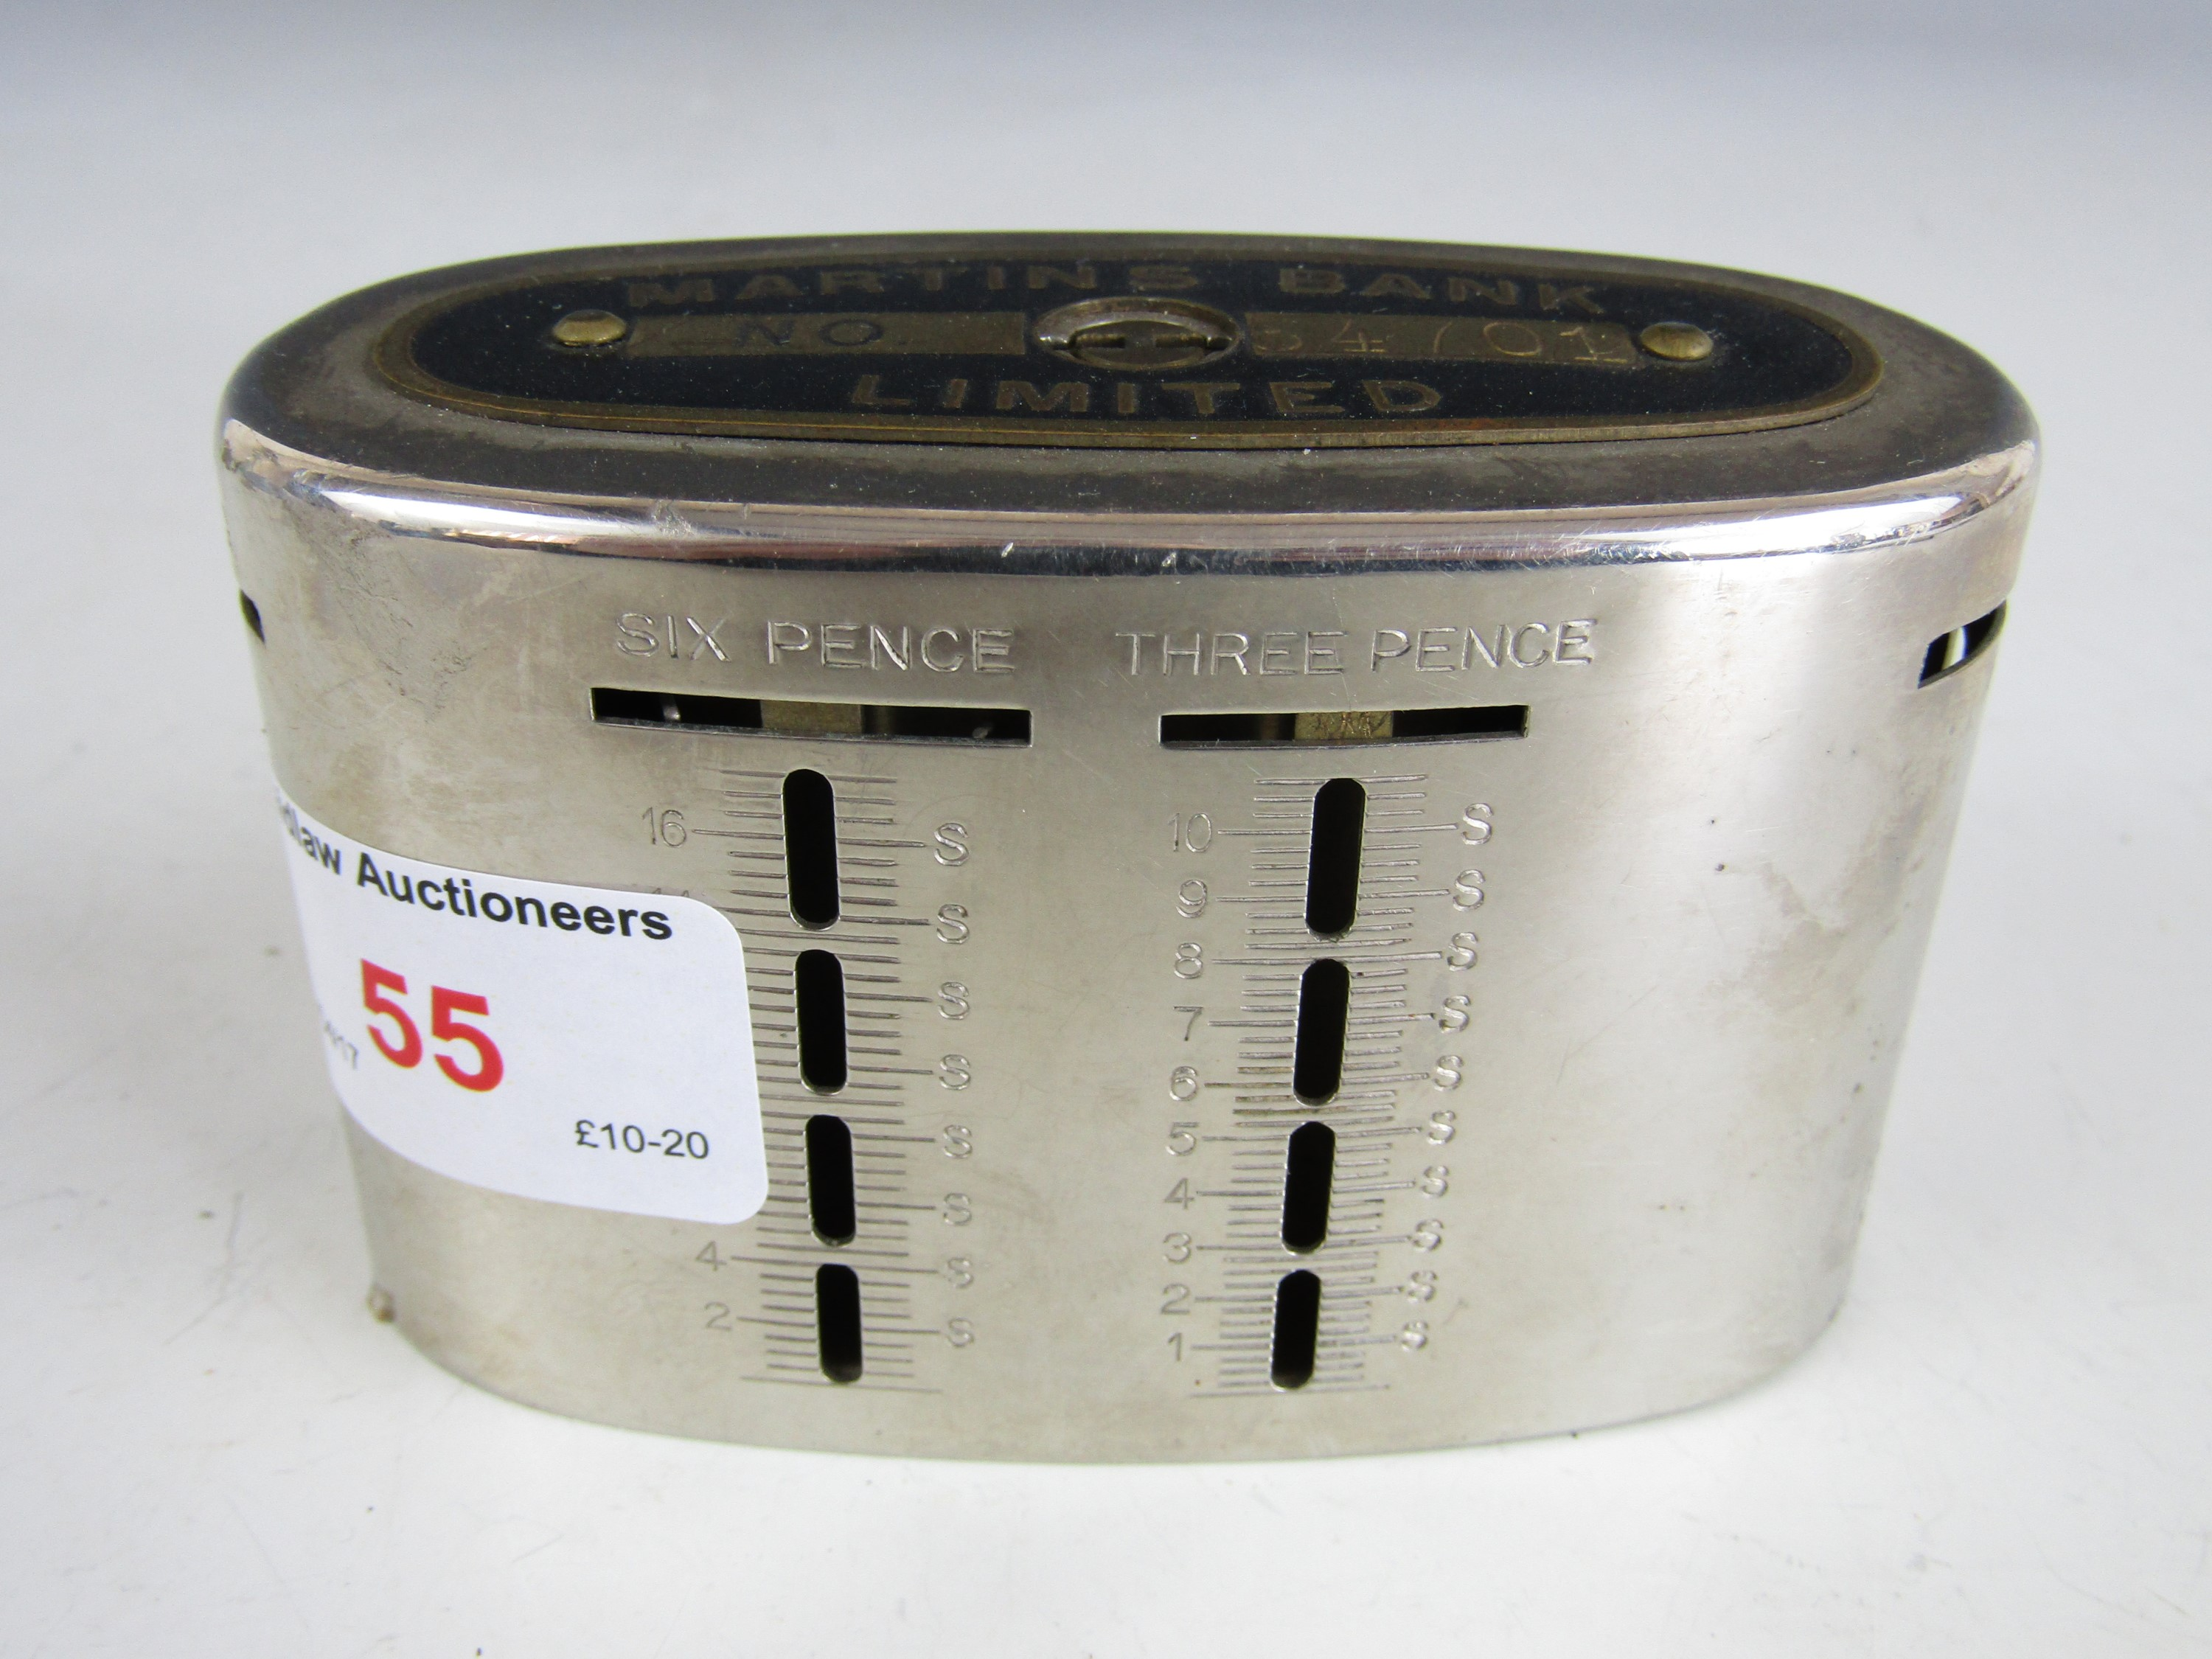 Lot 55 - A Martins Bank Limited money box with key